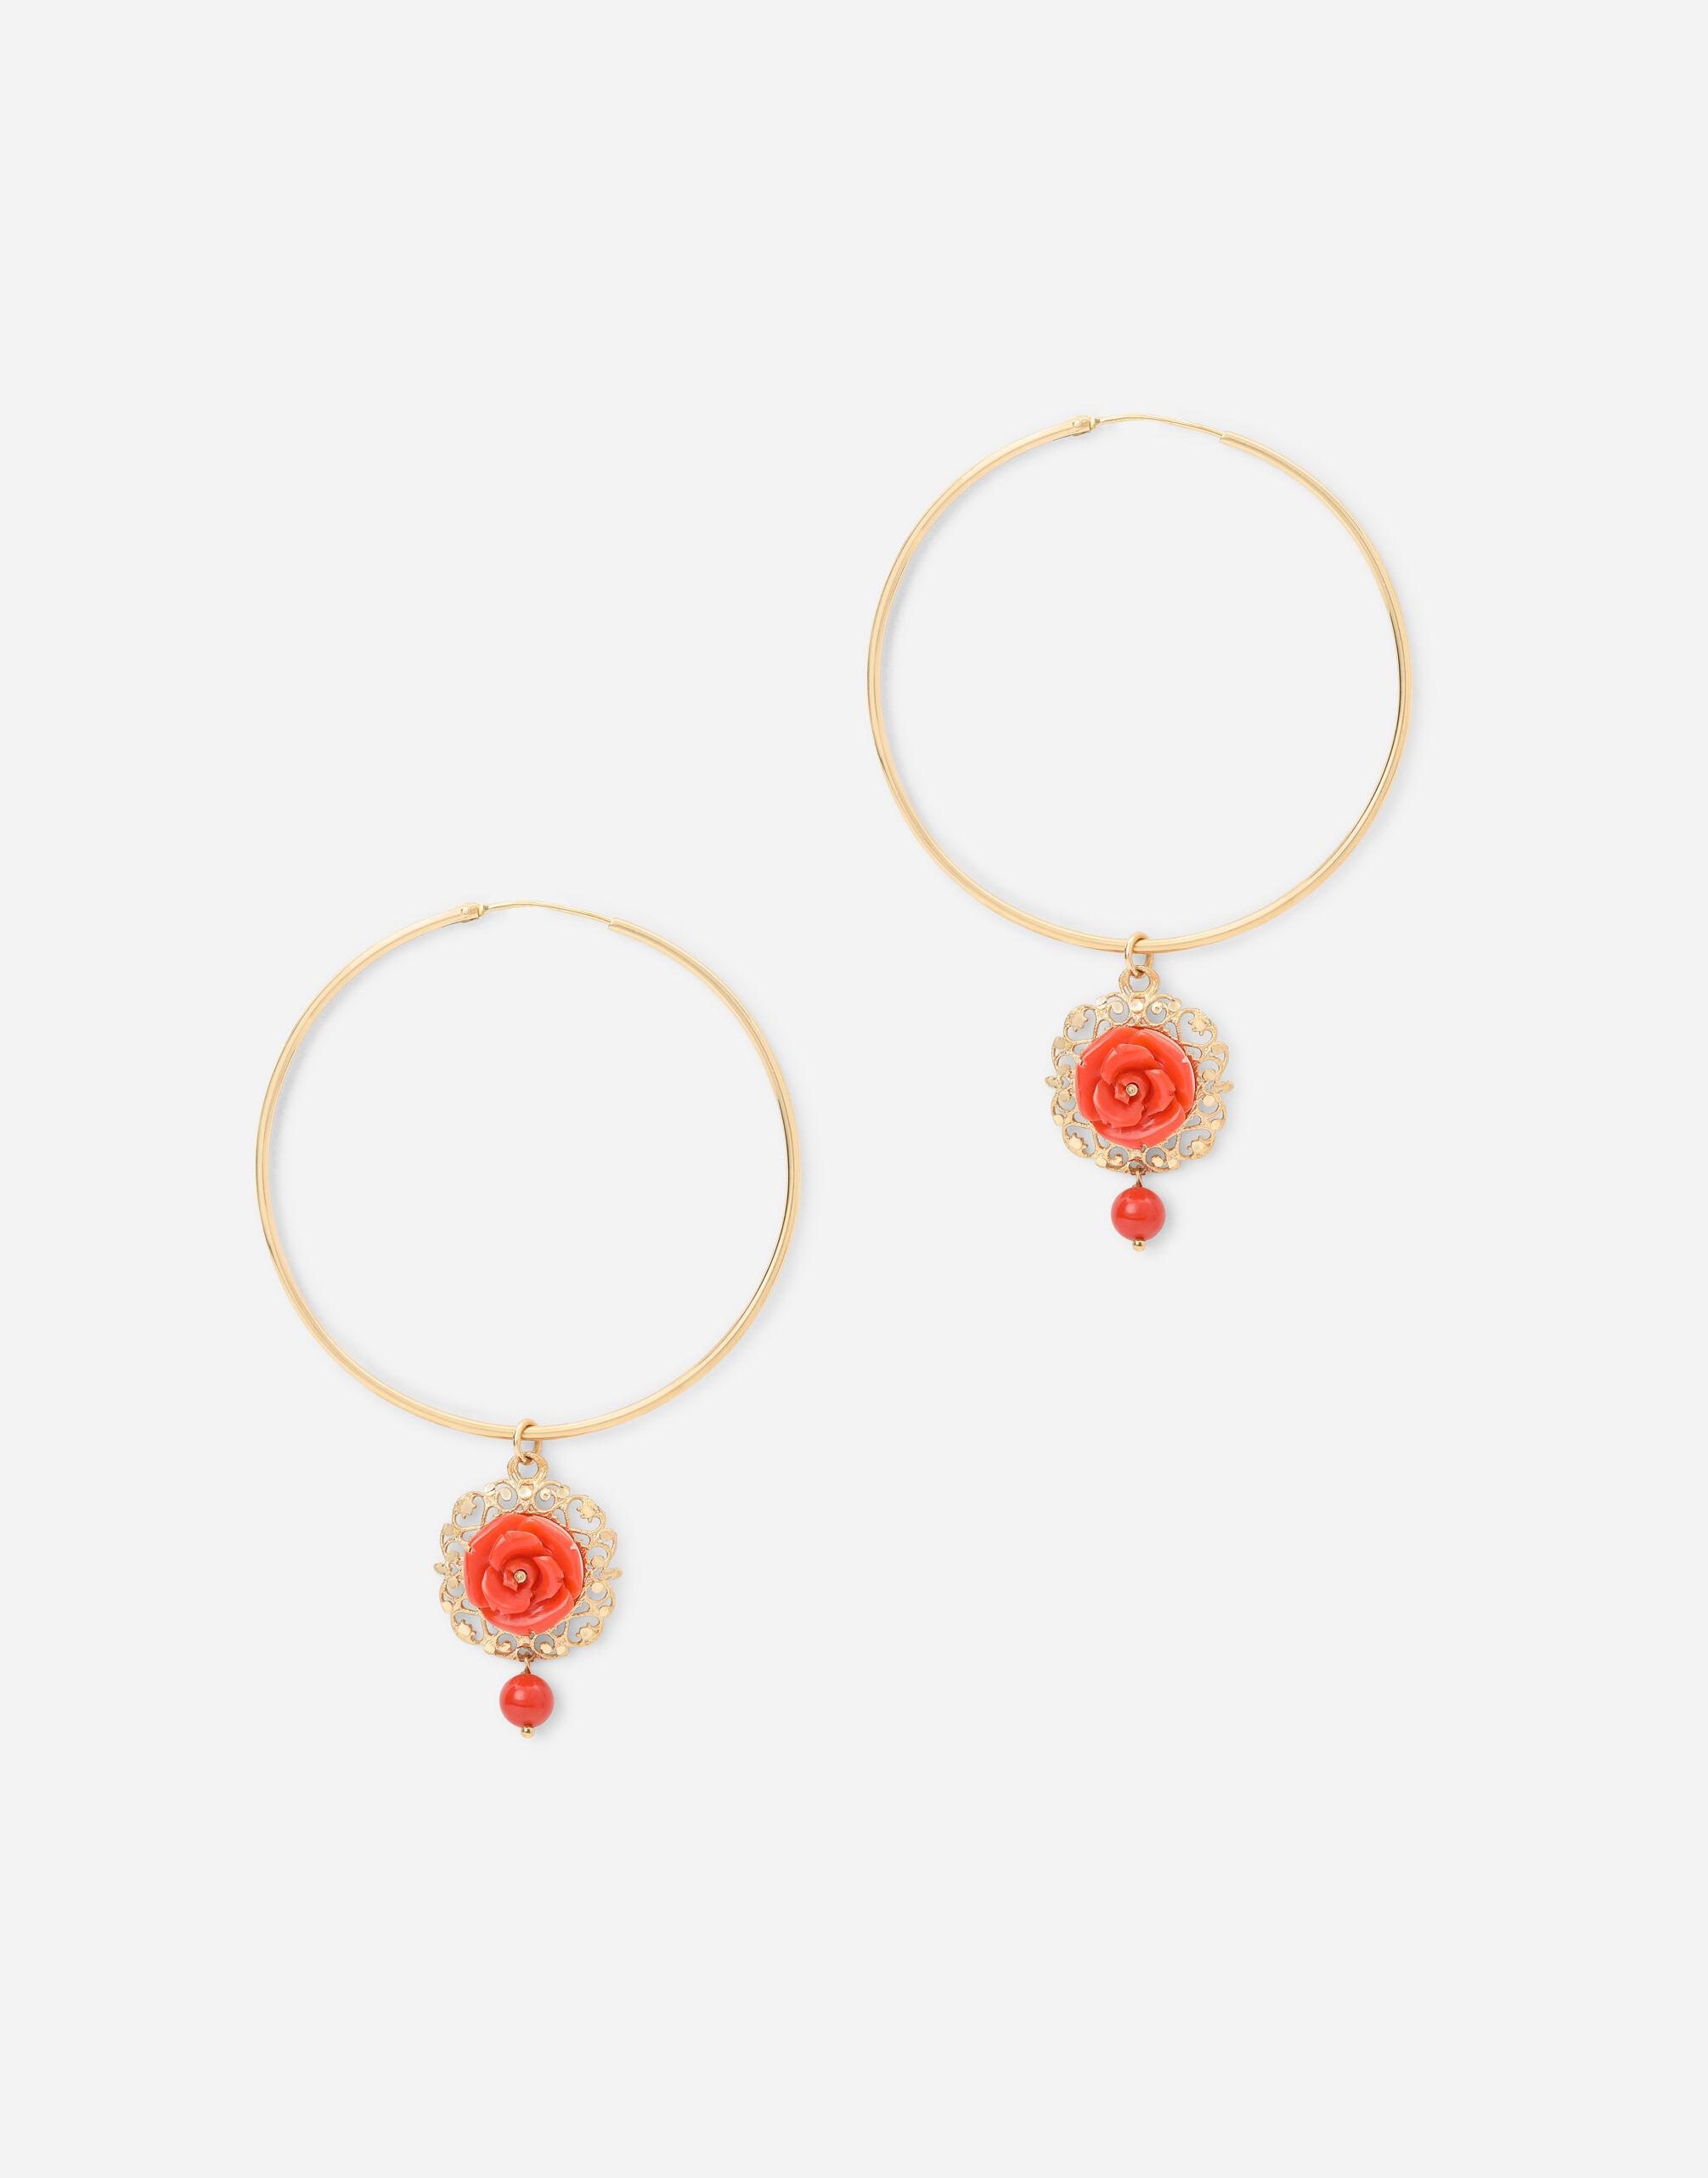 Coral loop earrings in yellow 18kt gold with coral roses